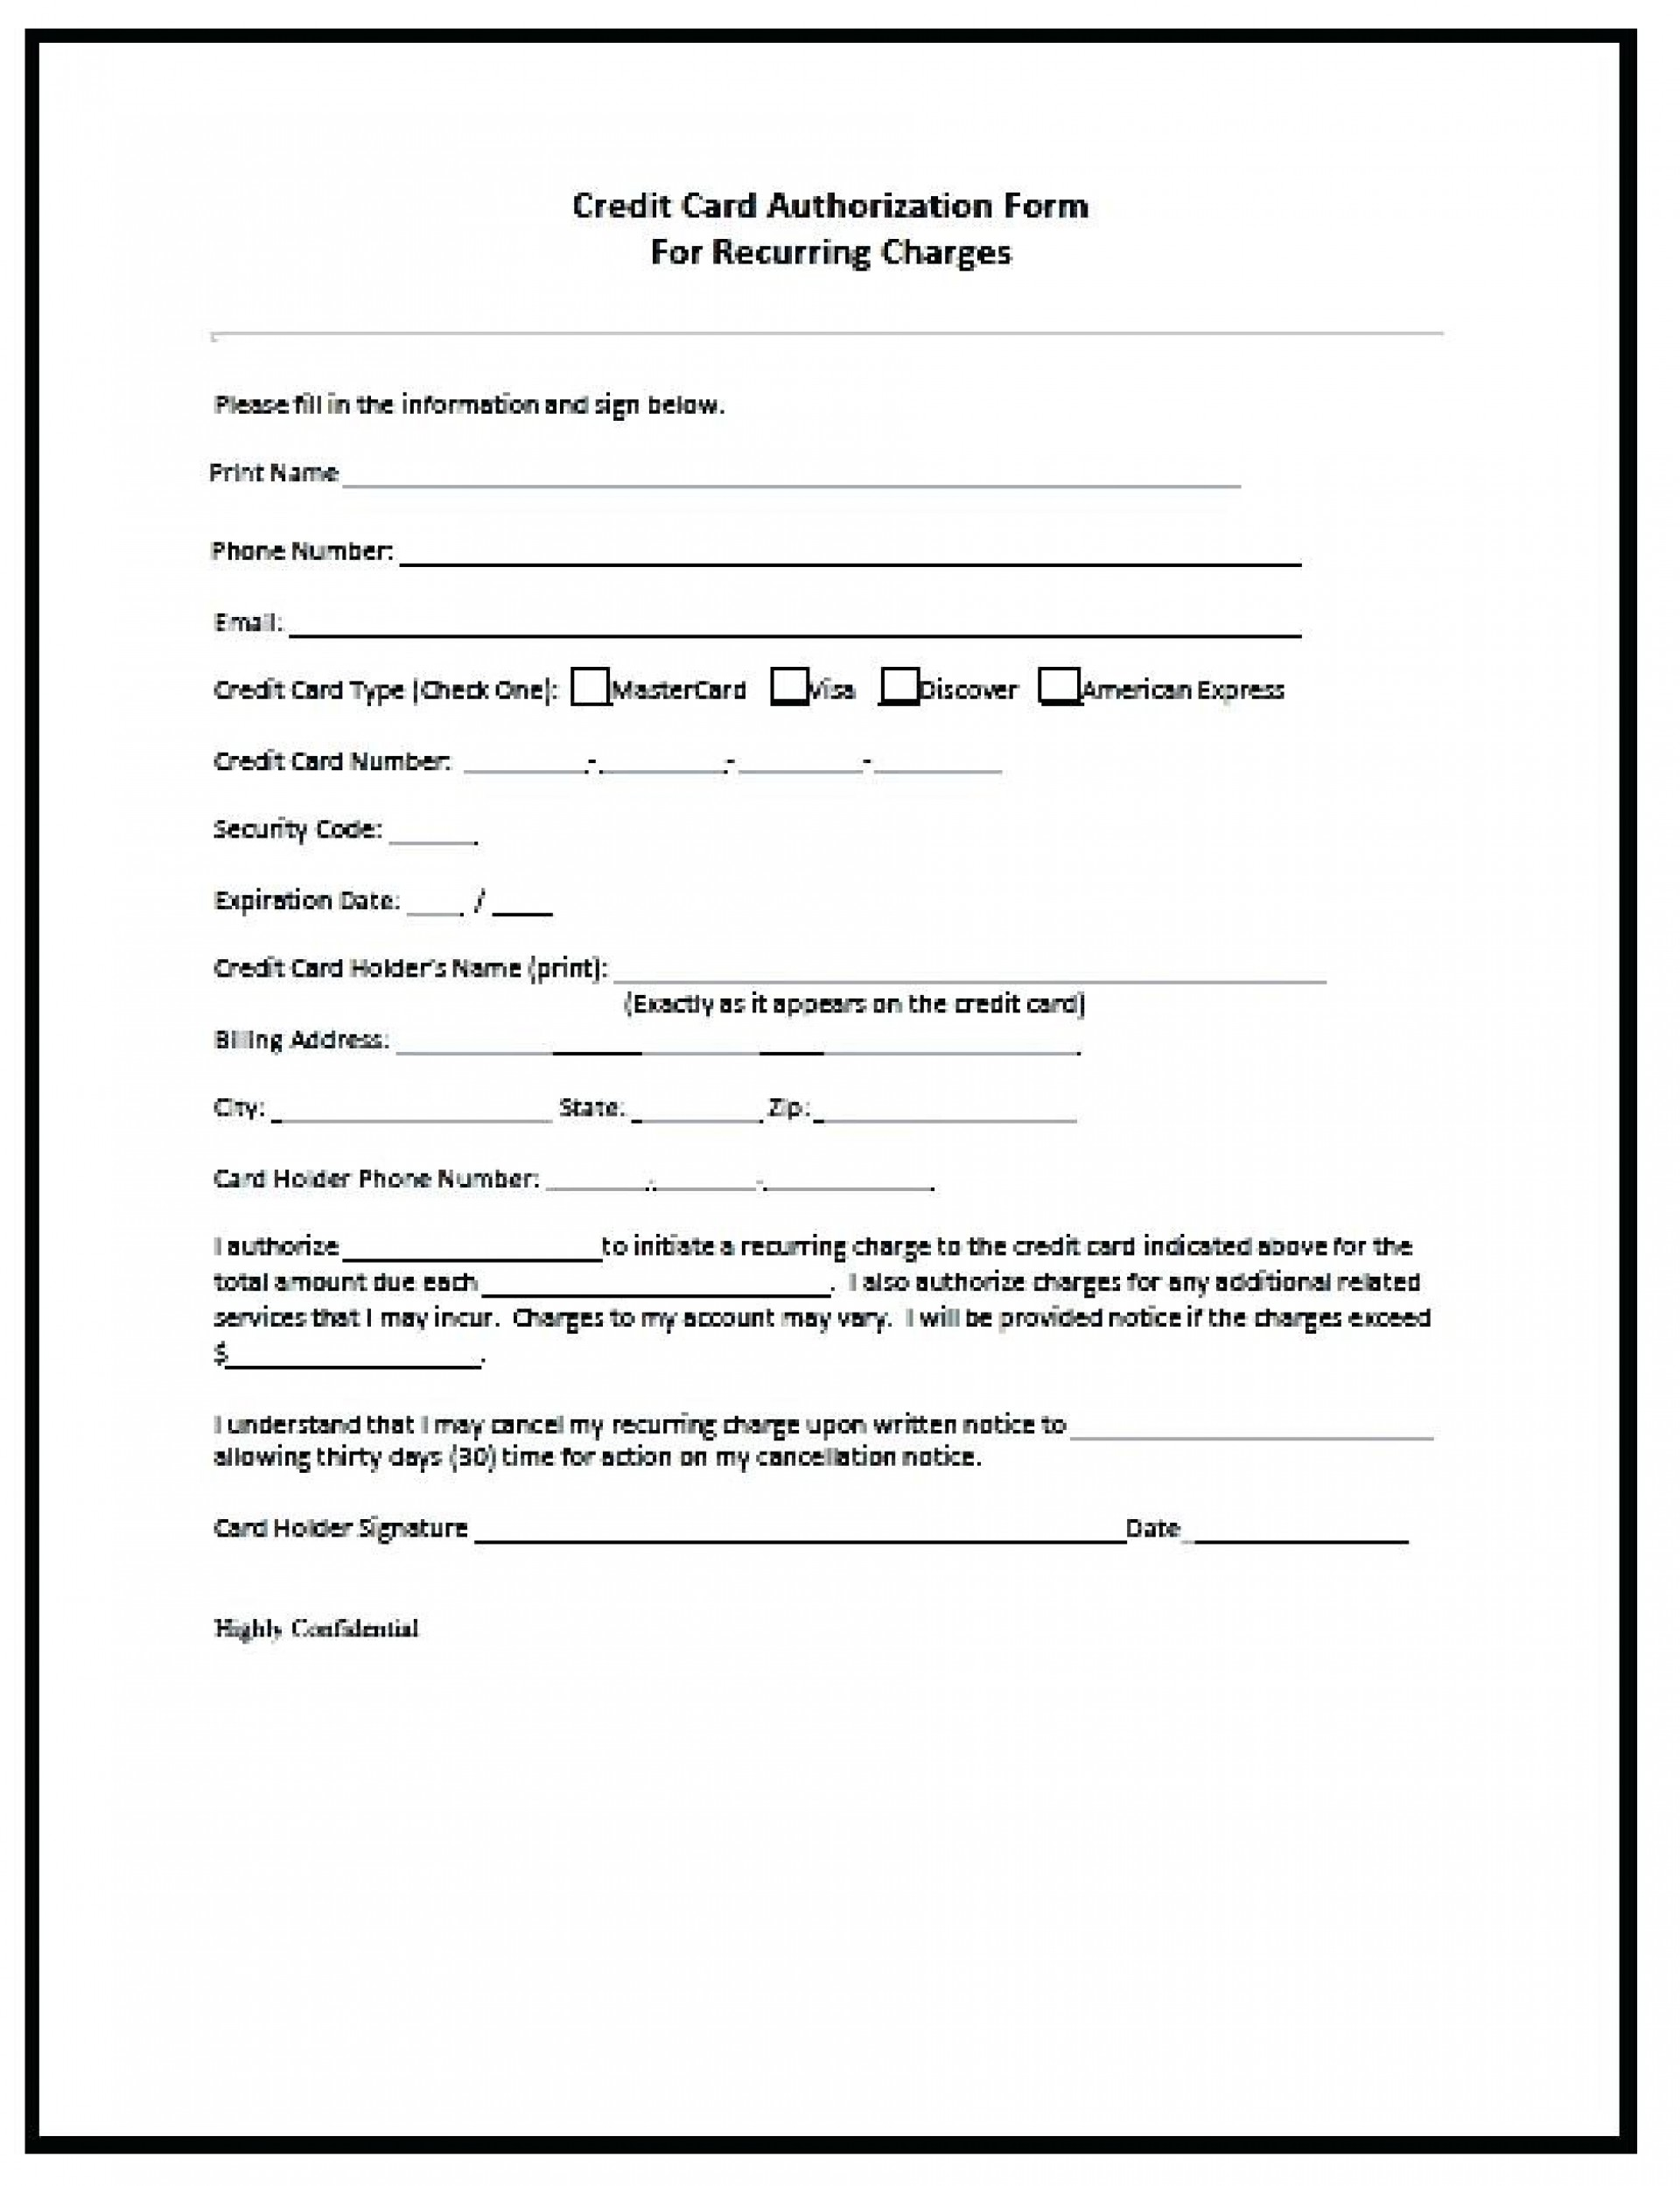 001 Remarkable Credit Card Usage Request Form Template High Def 1920